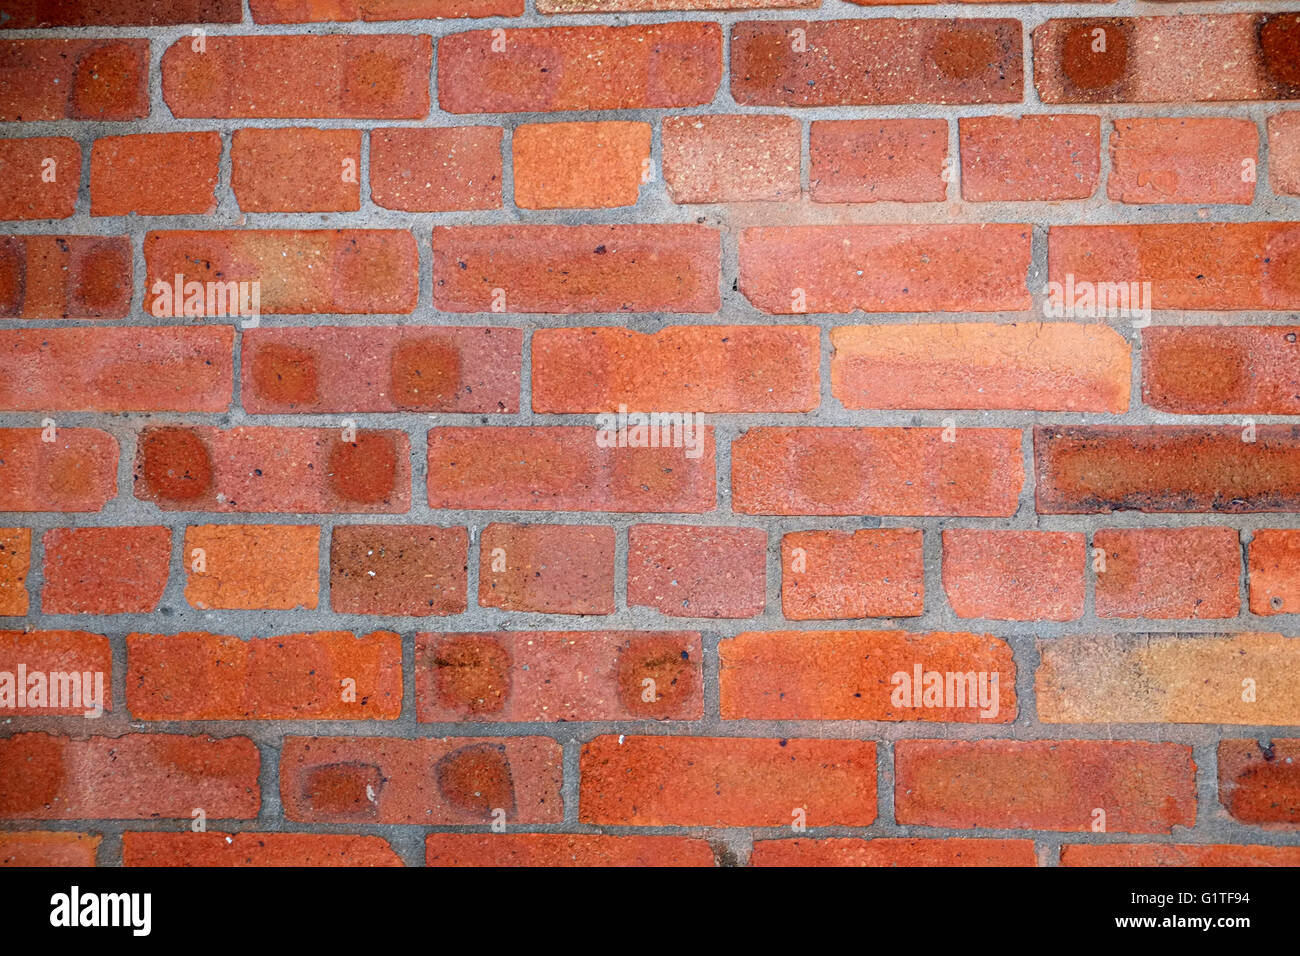 Red brick wall for use as a design texture or background. May 2016 - Stock Image